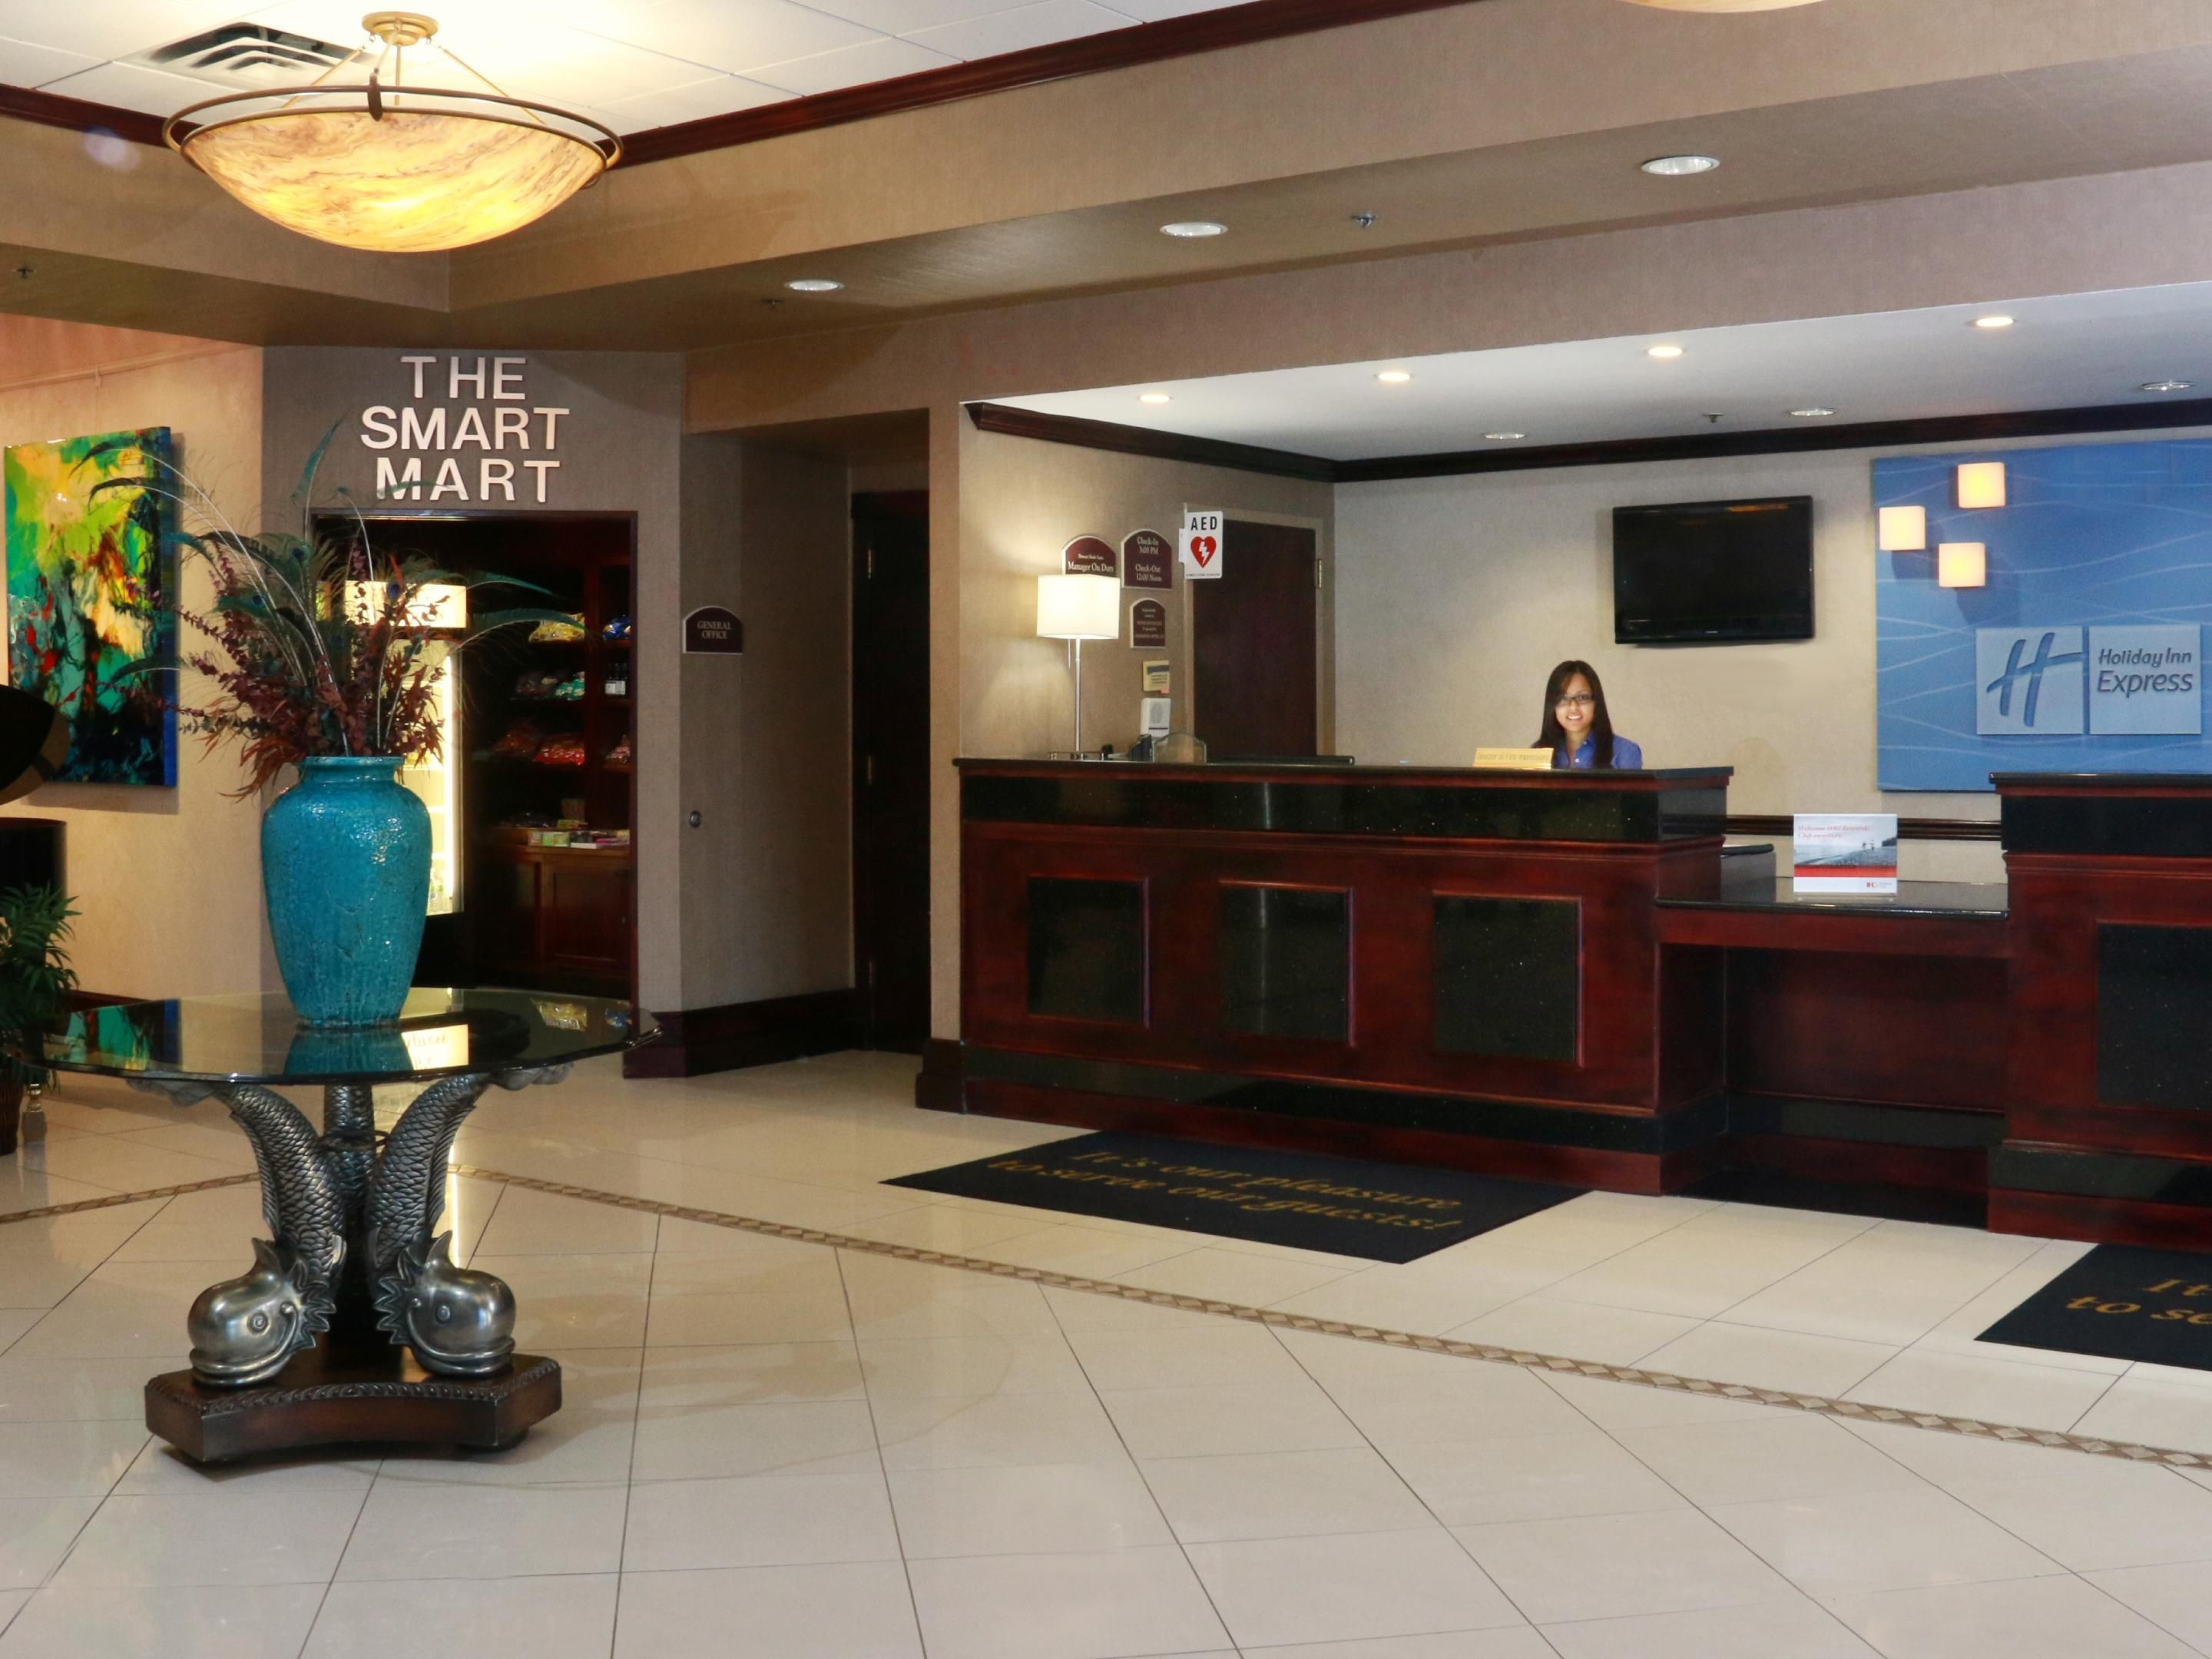 Our front desk agents are always ready to check you in!